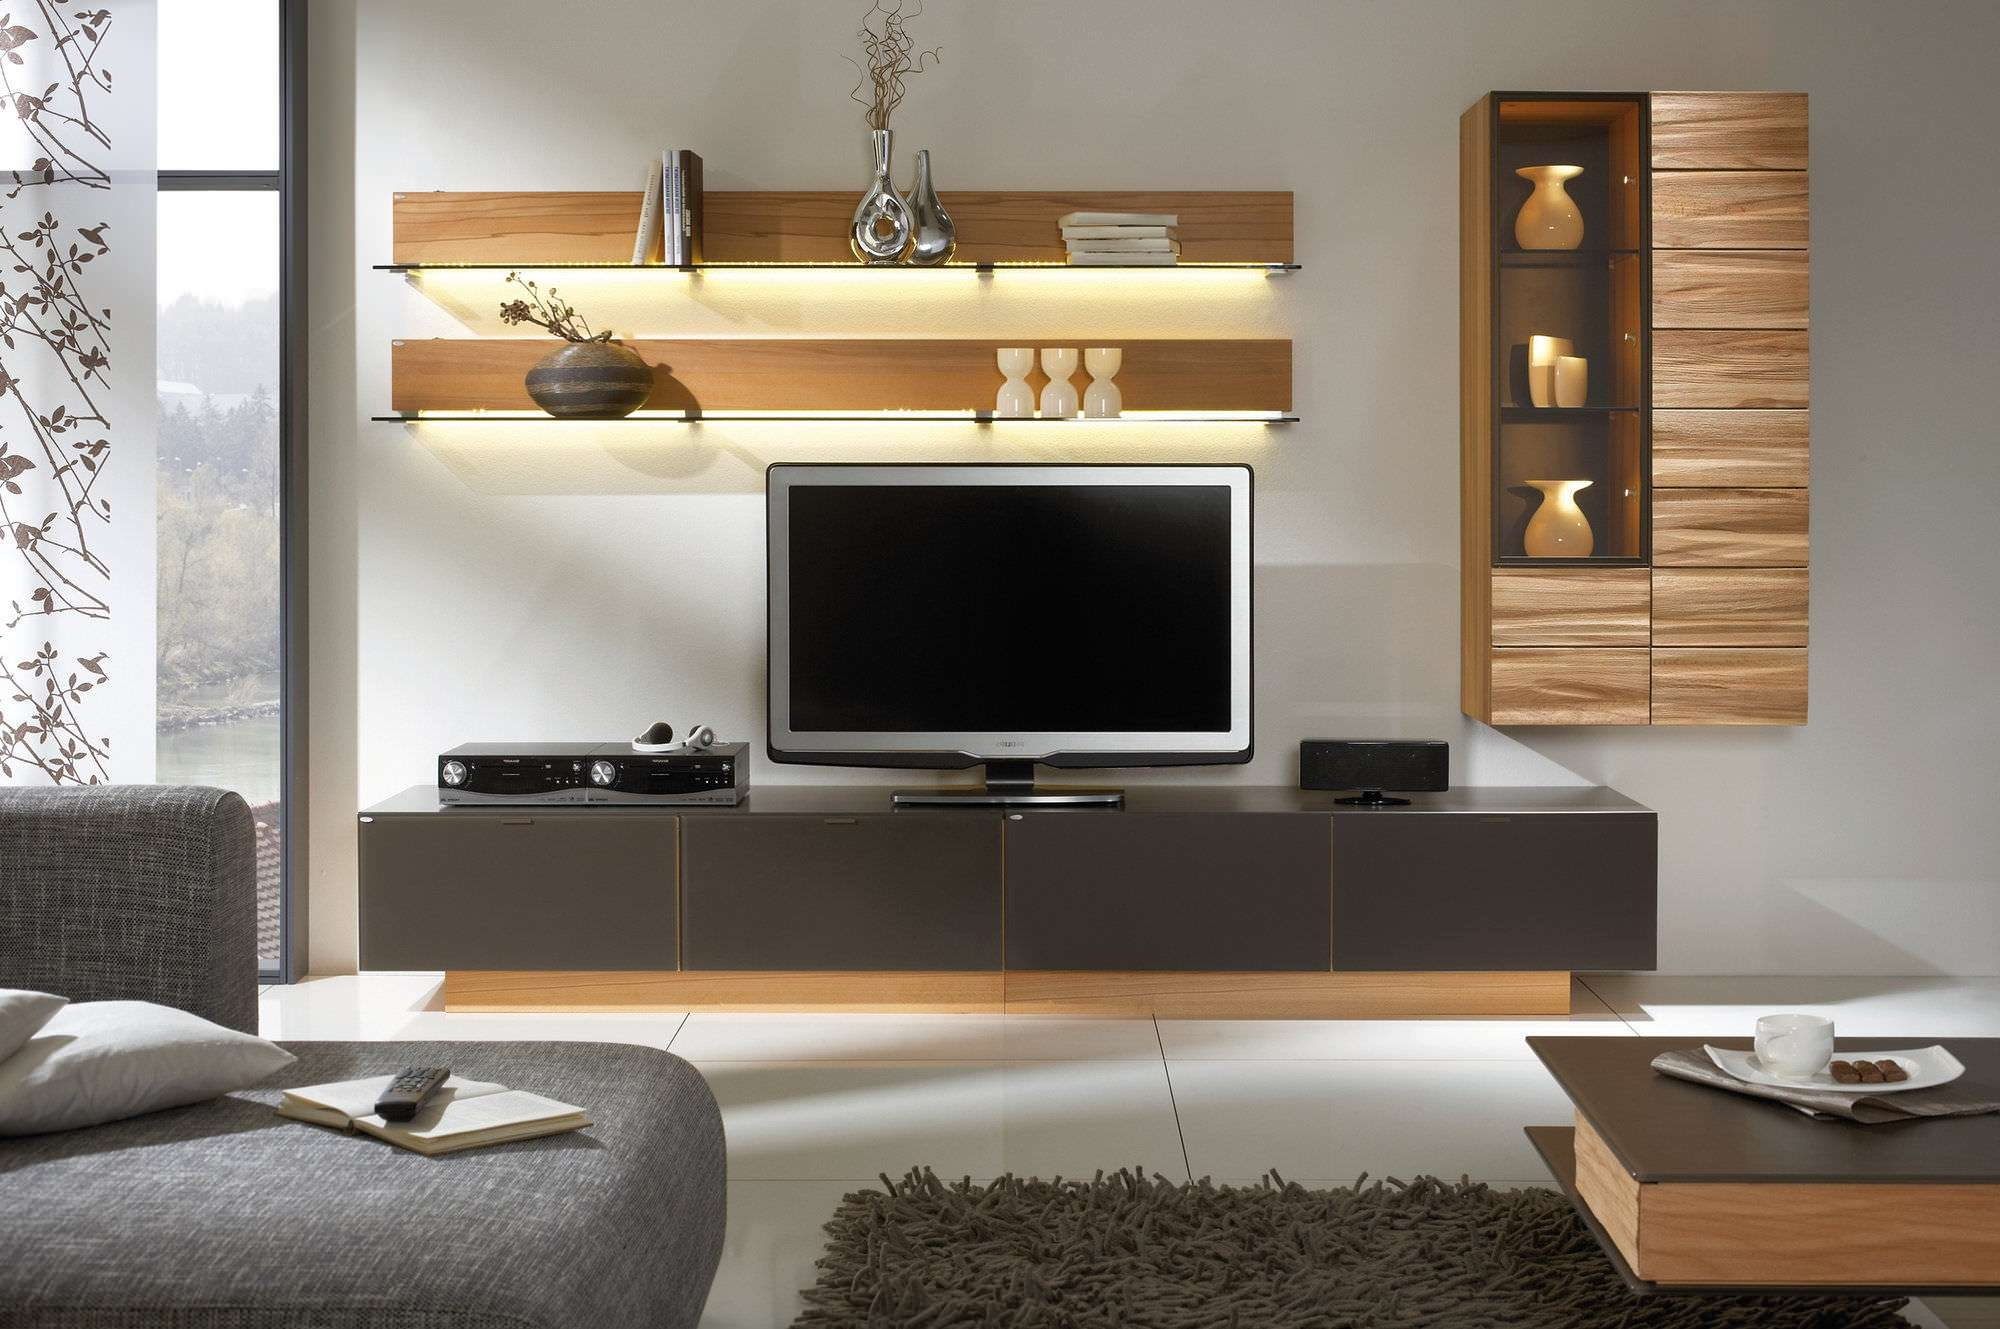 Bedroom : Tv Stand Unit Led Tv Table Wall Cabinets For Living Room Inside Under Tv Cabinets (View 17 of 20)